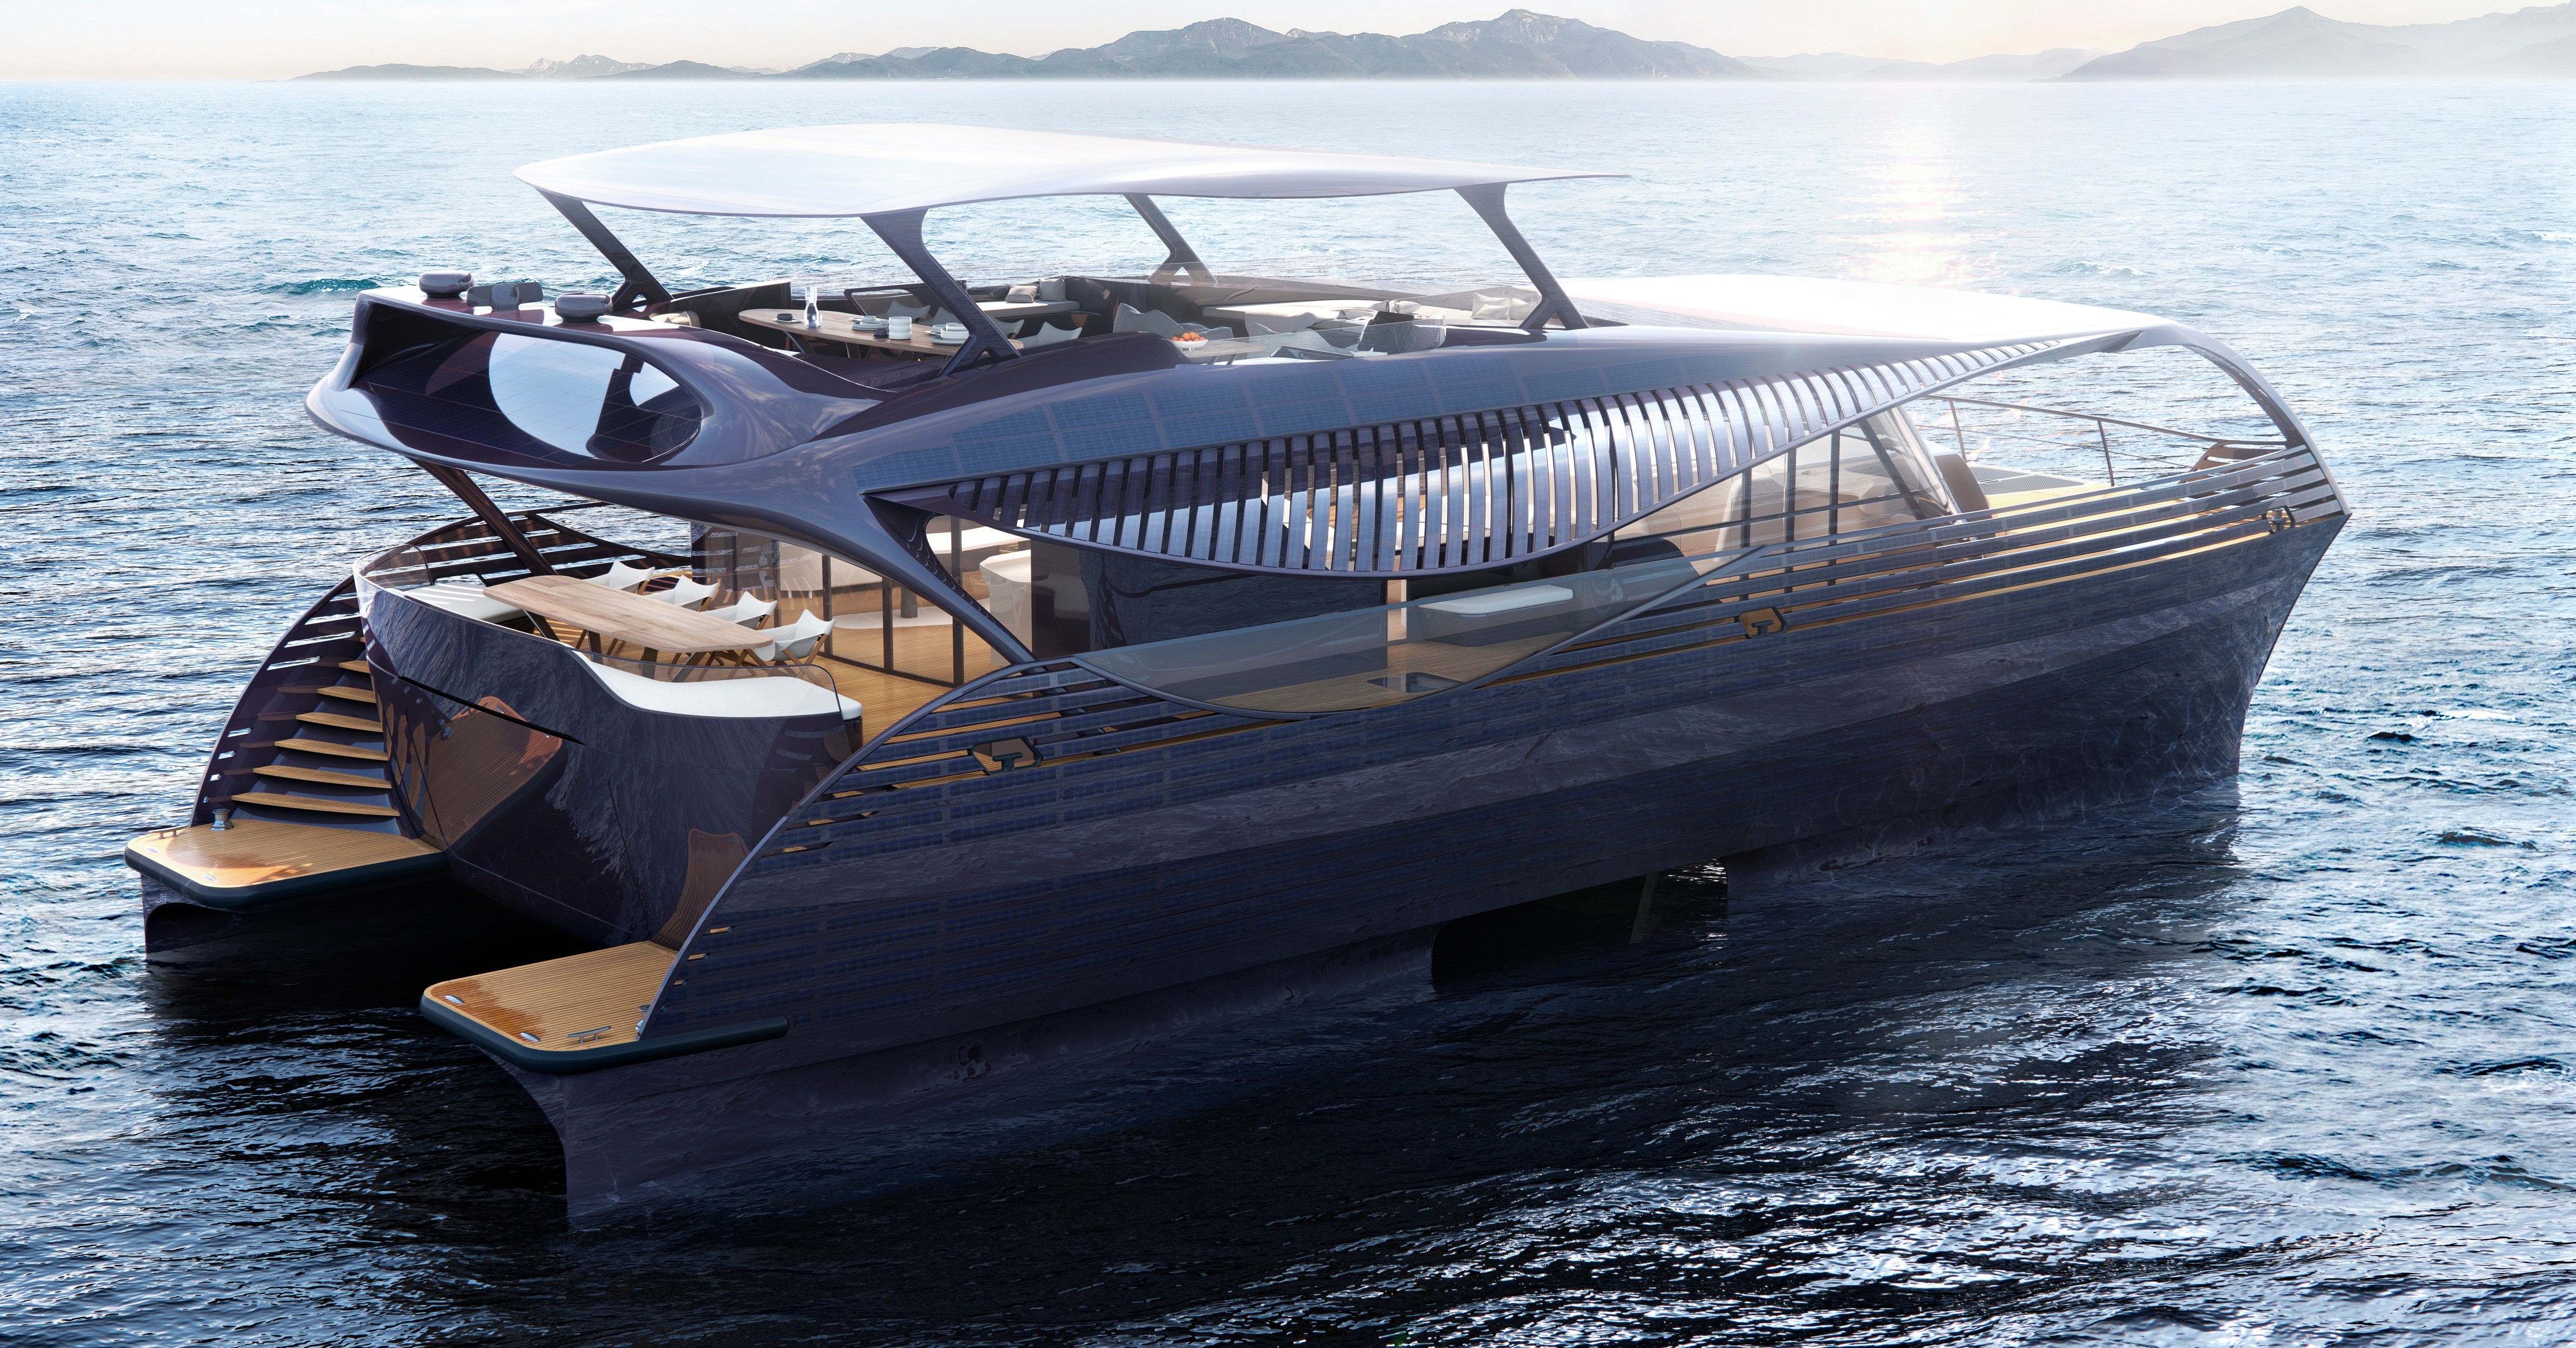 Luxury yacht, Yacht, Solar energy, Electric vehicle, Energy, A, Solar power, Ship, Watercraft, sailing, Yacht, boat, water transportation, watercraft, yacht, motorboat, boating, luxury yacht, vehicle, passenger ship, picnic boat